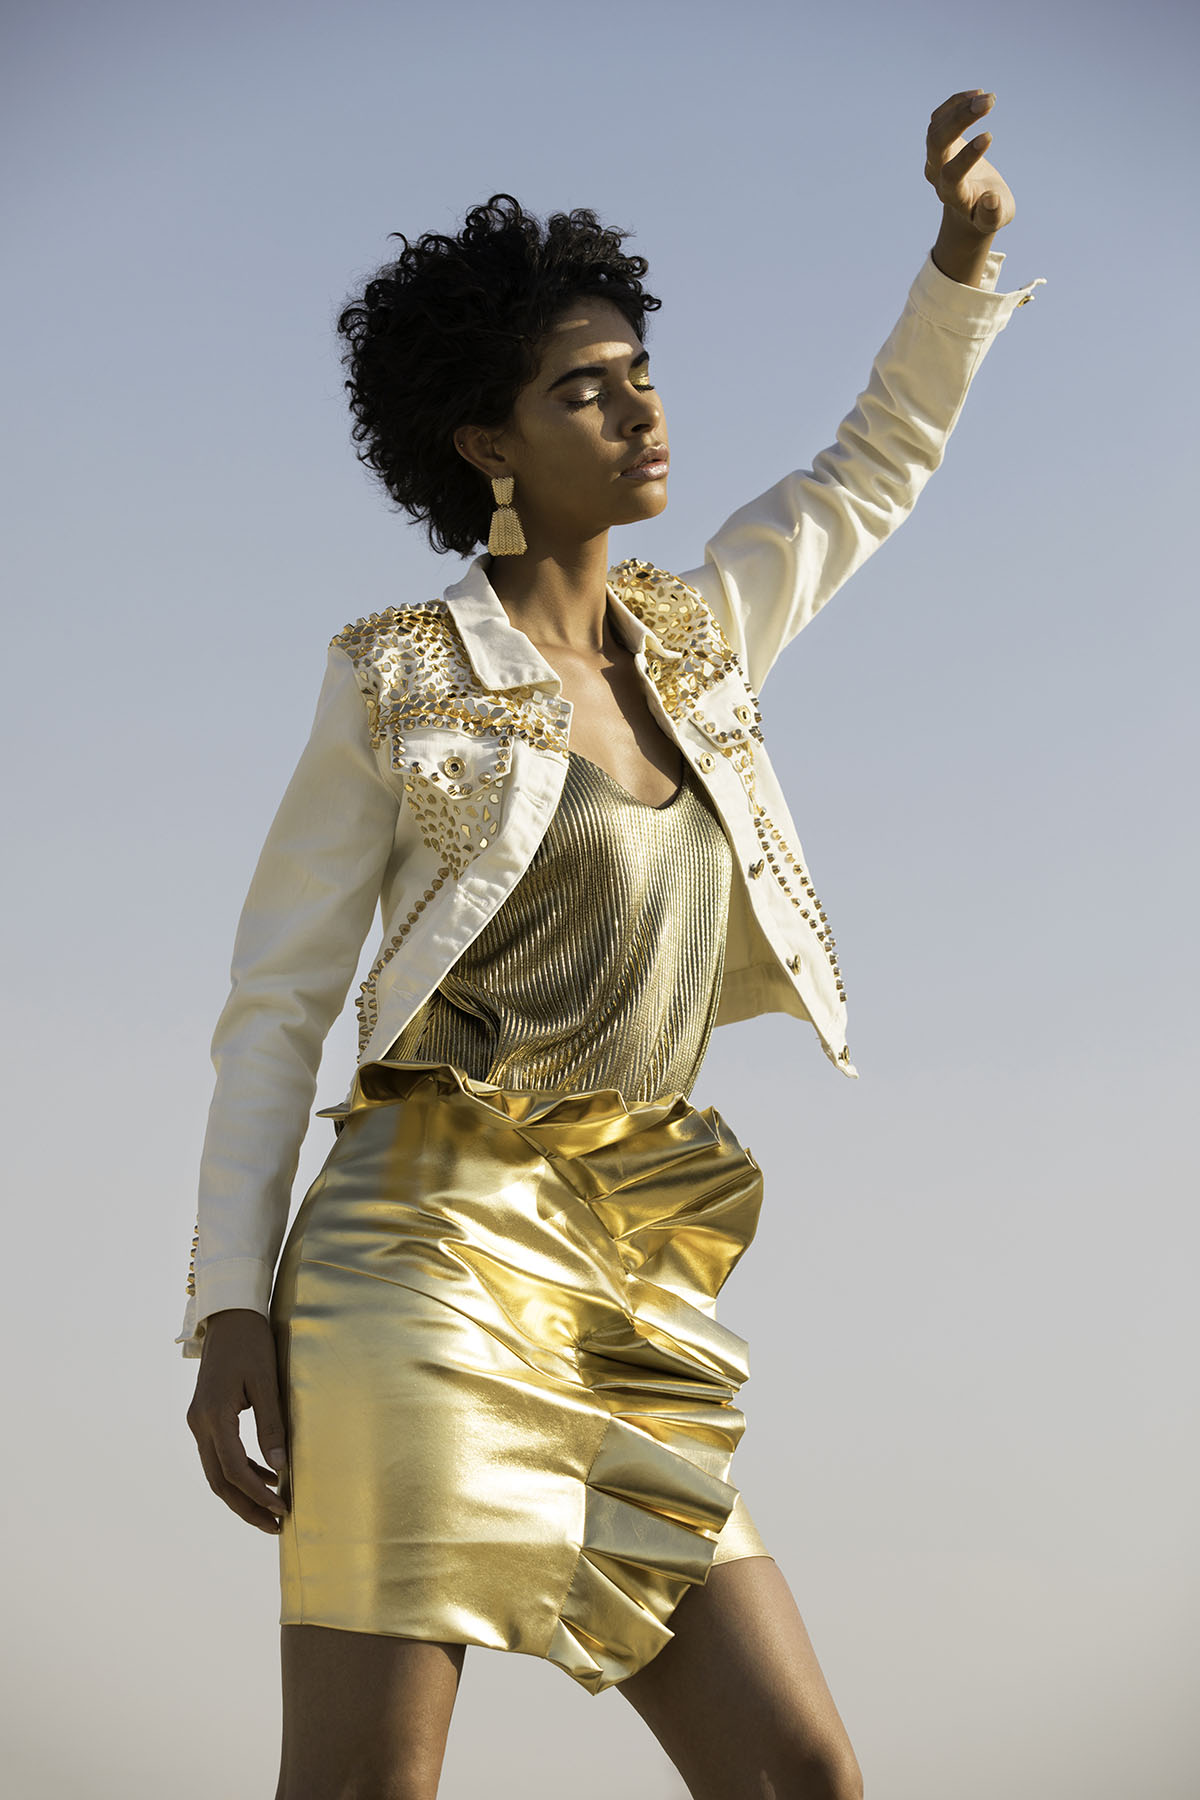 Fashion shoot by Loesje Kessels Fashion Photographer Dubai